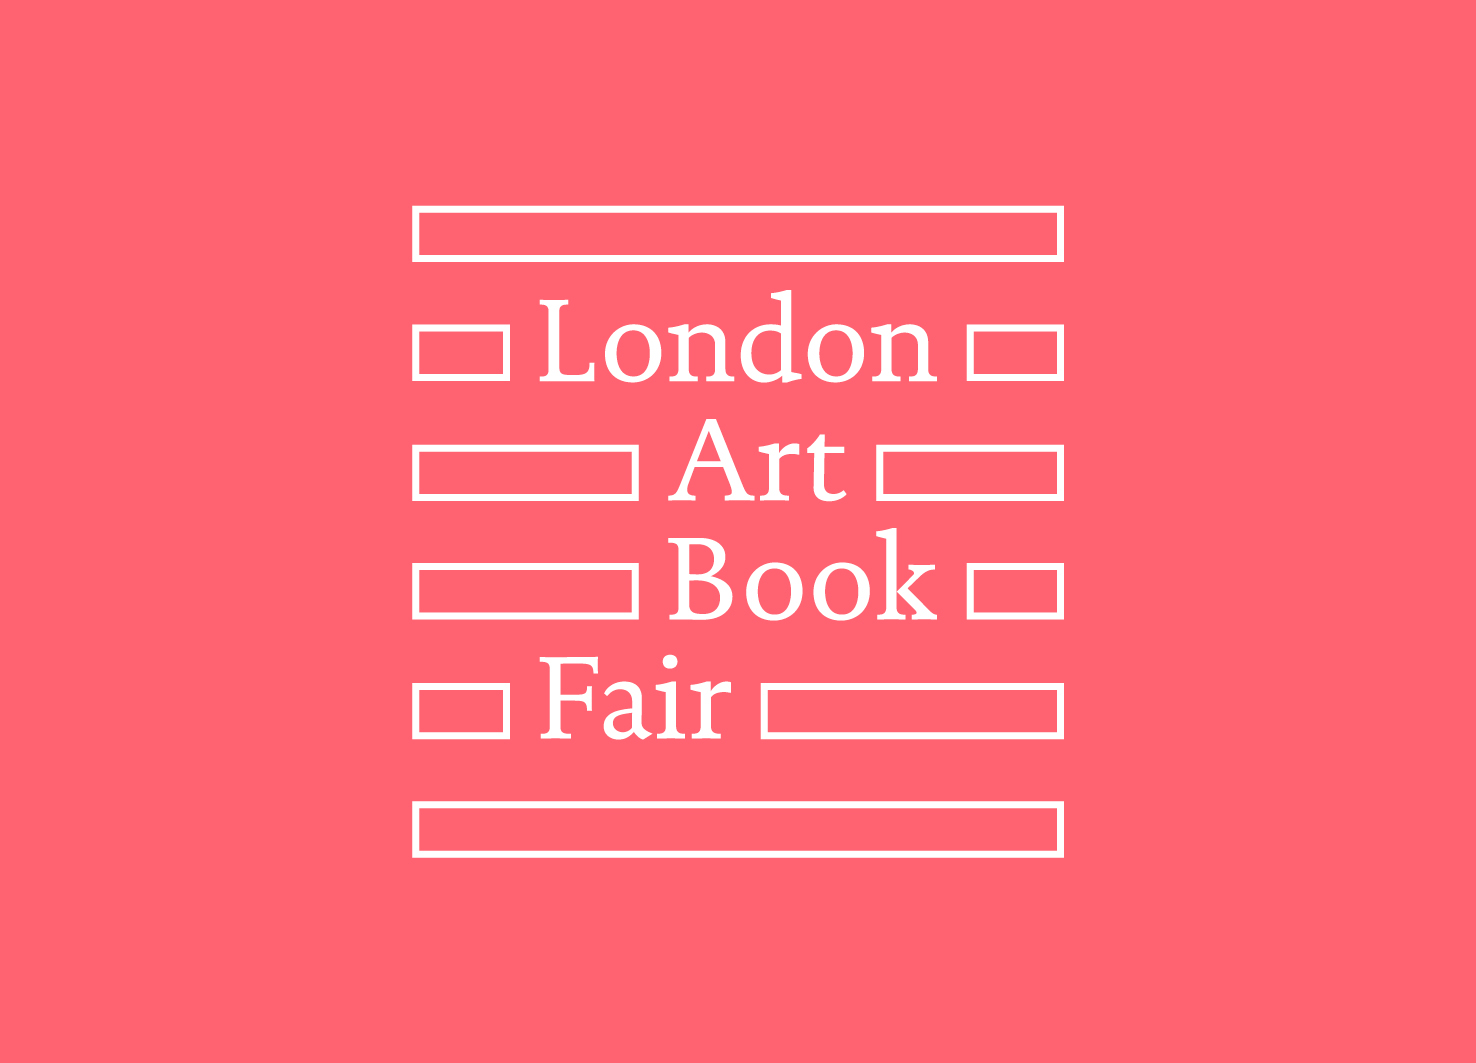 London Art Book Fair 2018